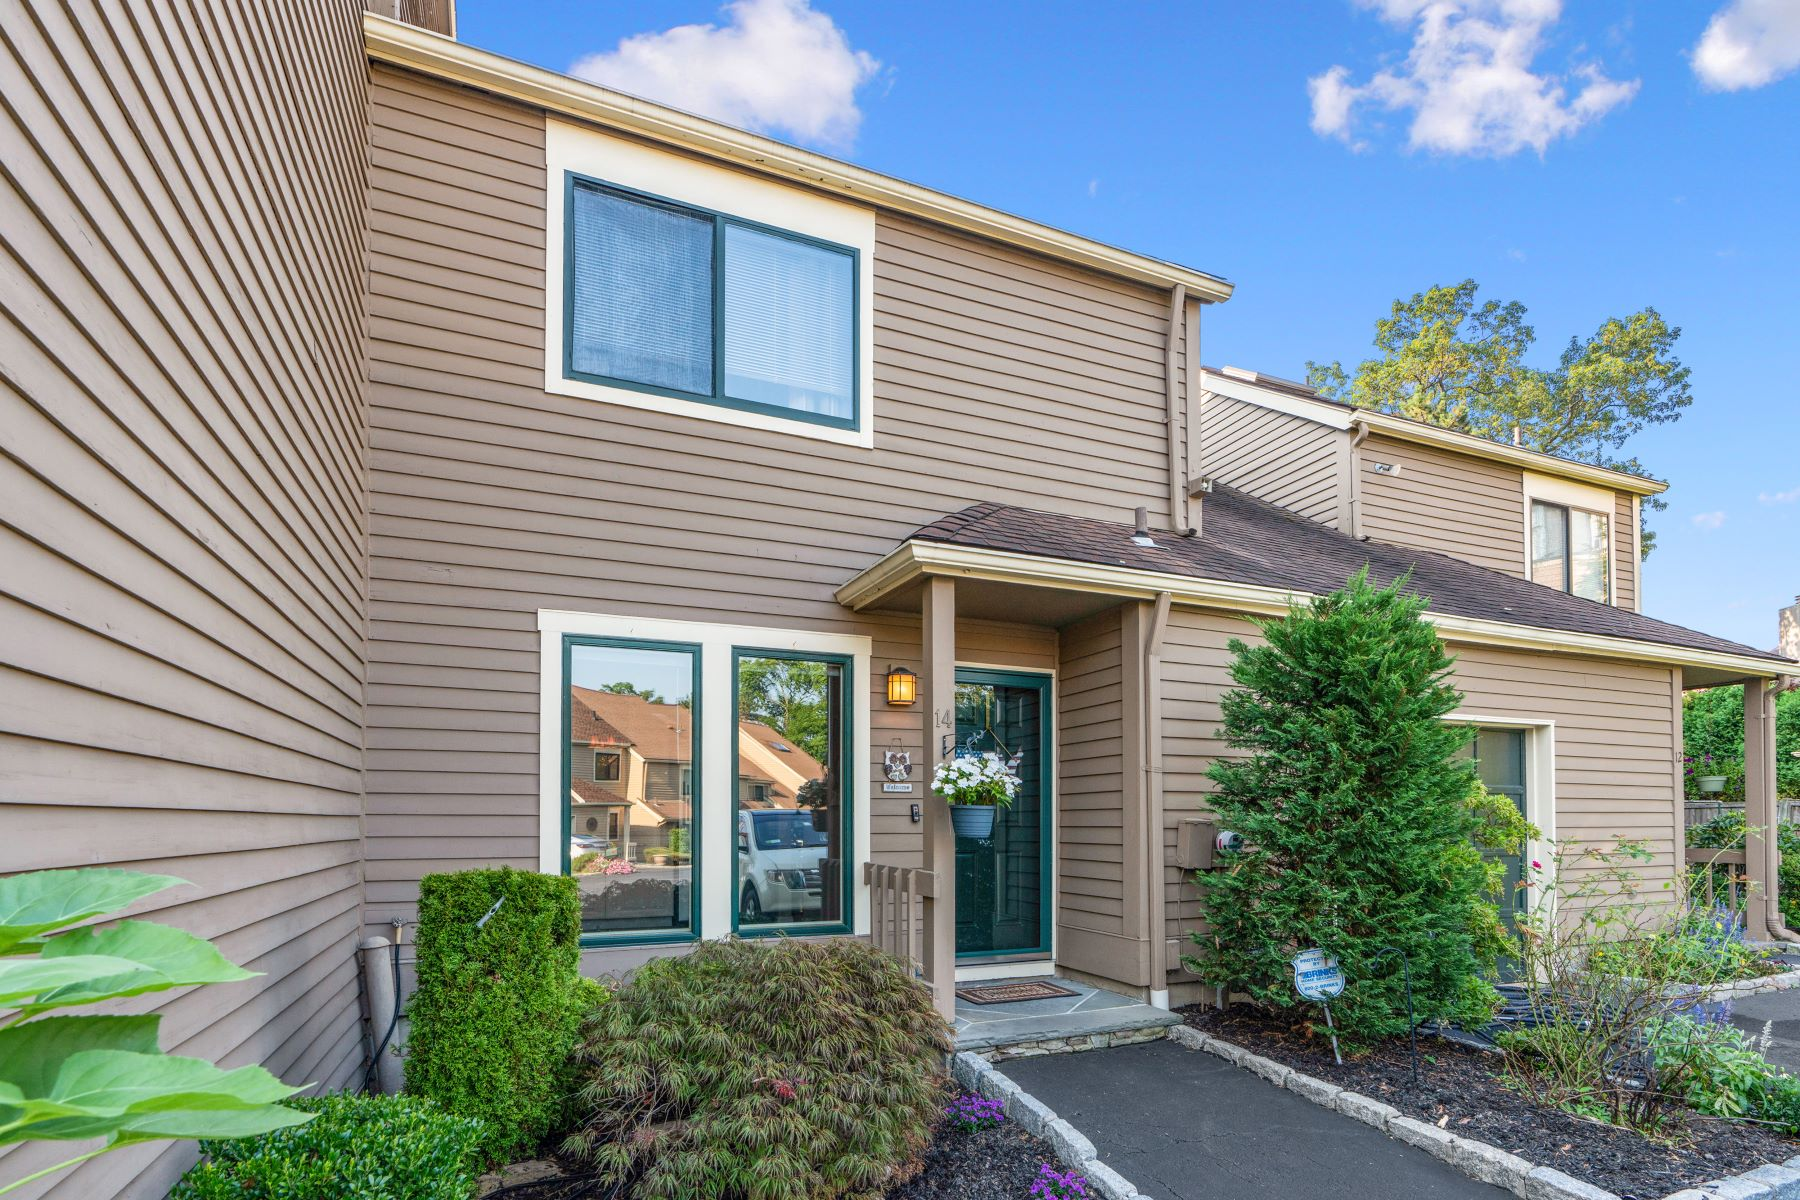 Single Family Homes for Sale at Awesome Updated Town House 14 Lisa Court Dobbs Ferry, New York 10522 United States